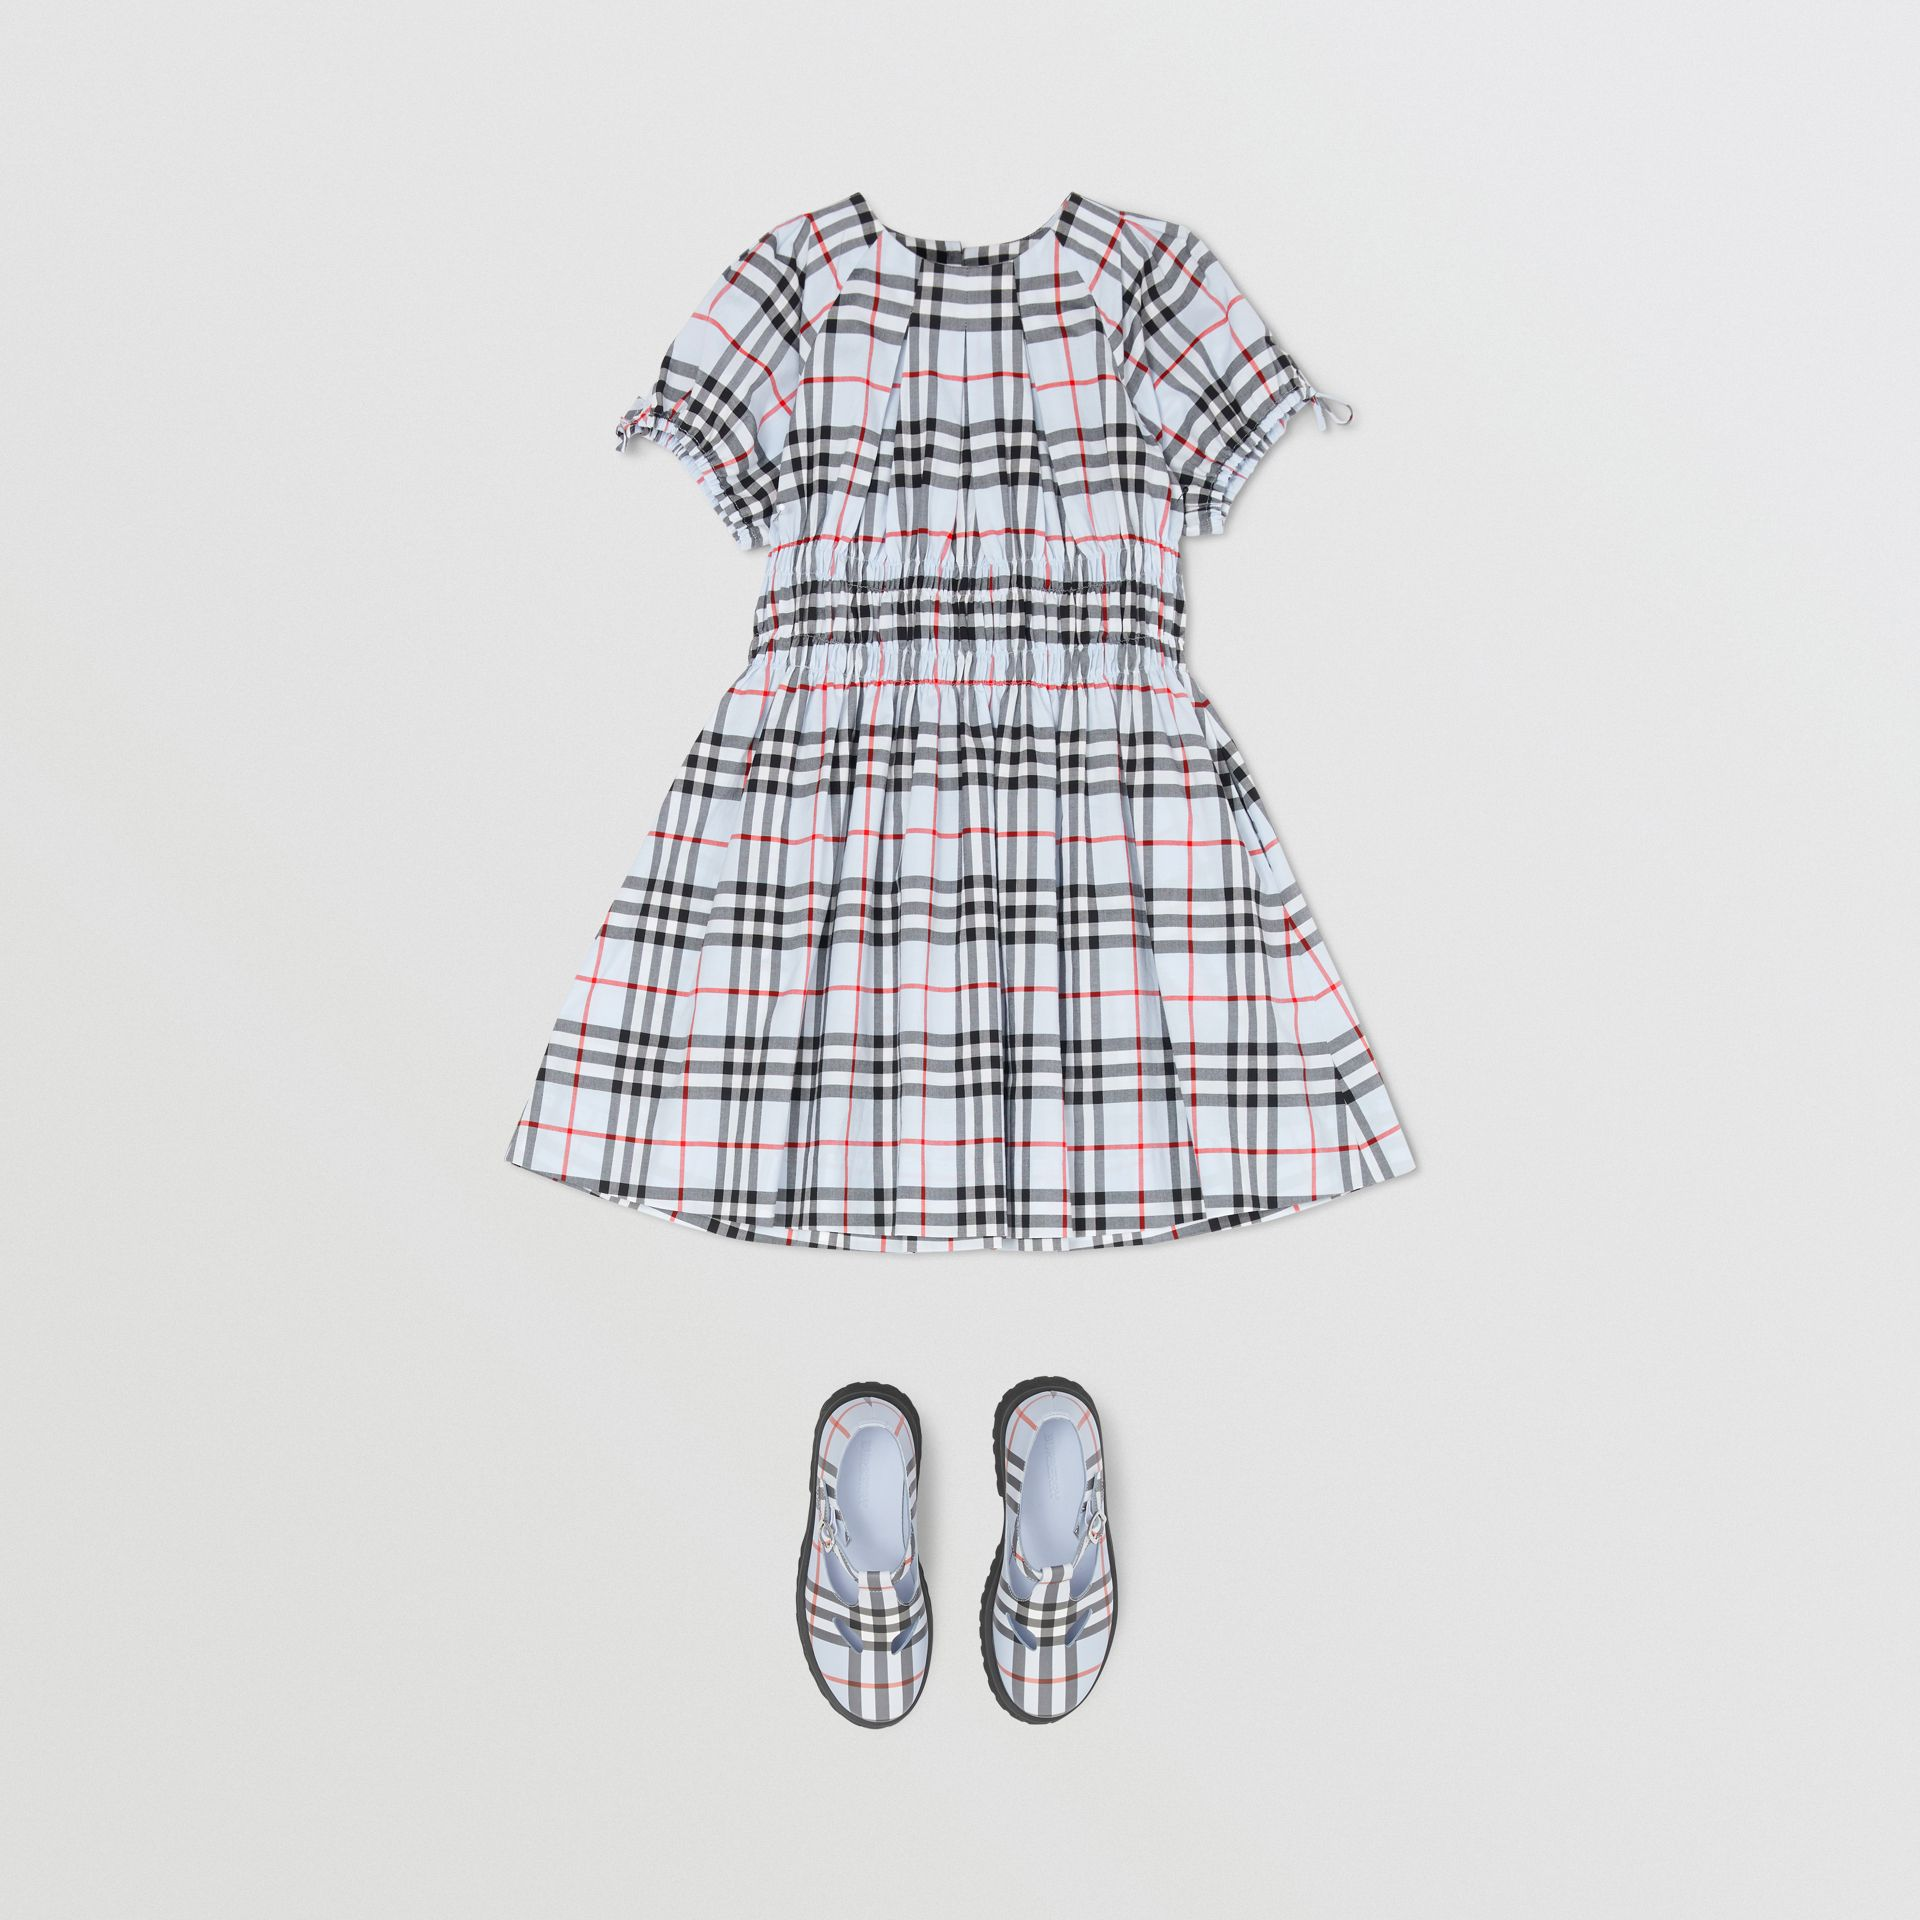 Ruched Panel Vintage Check Cotton Dress in Pale Blue | Burberry - gallery image 2